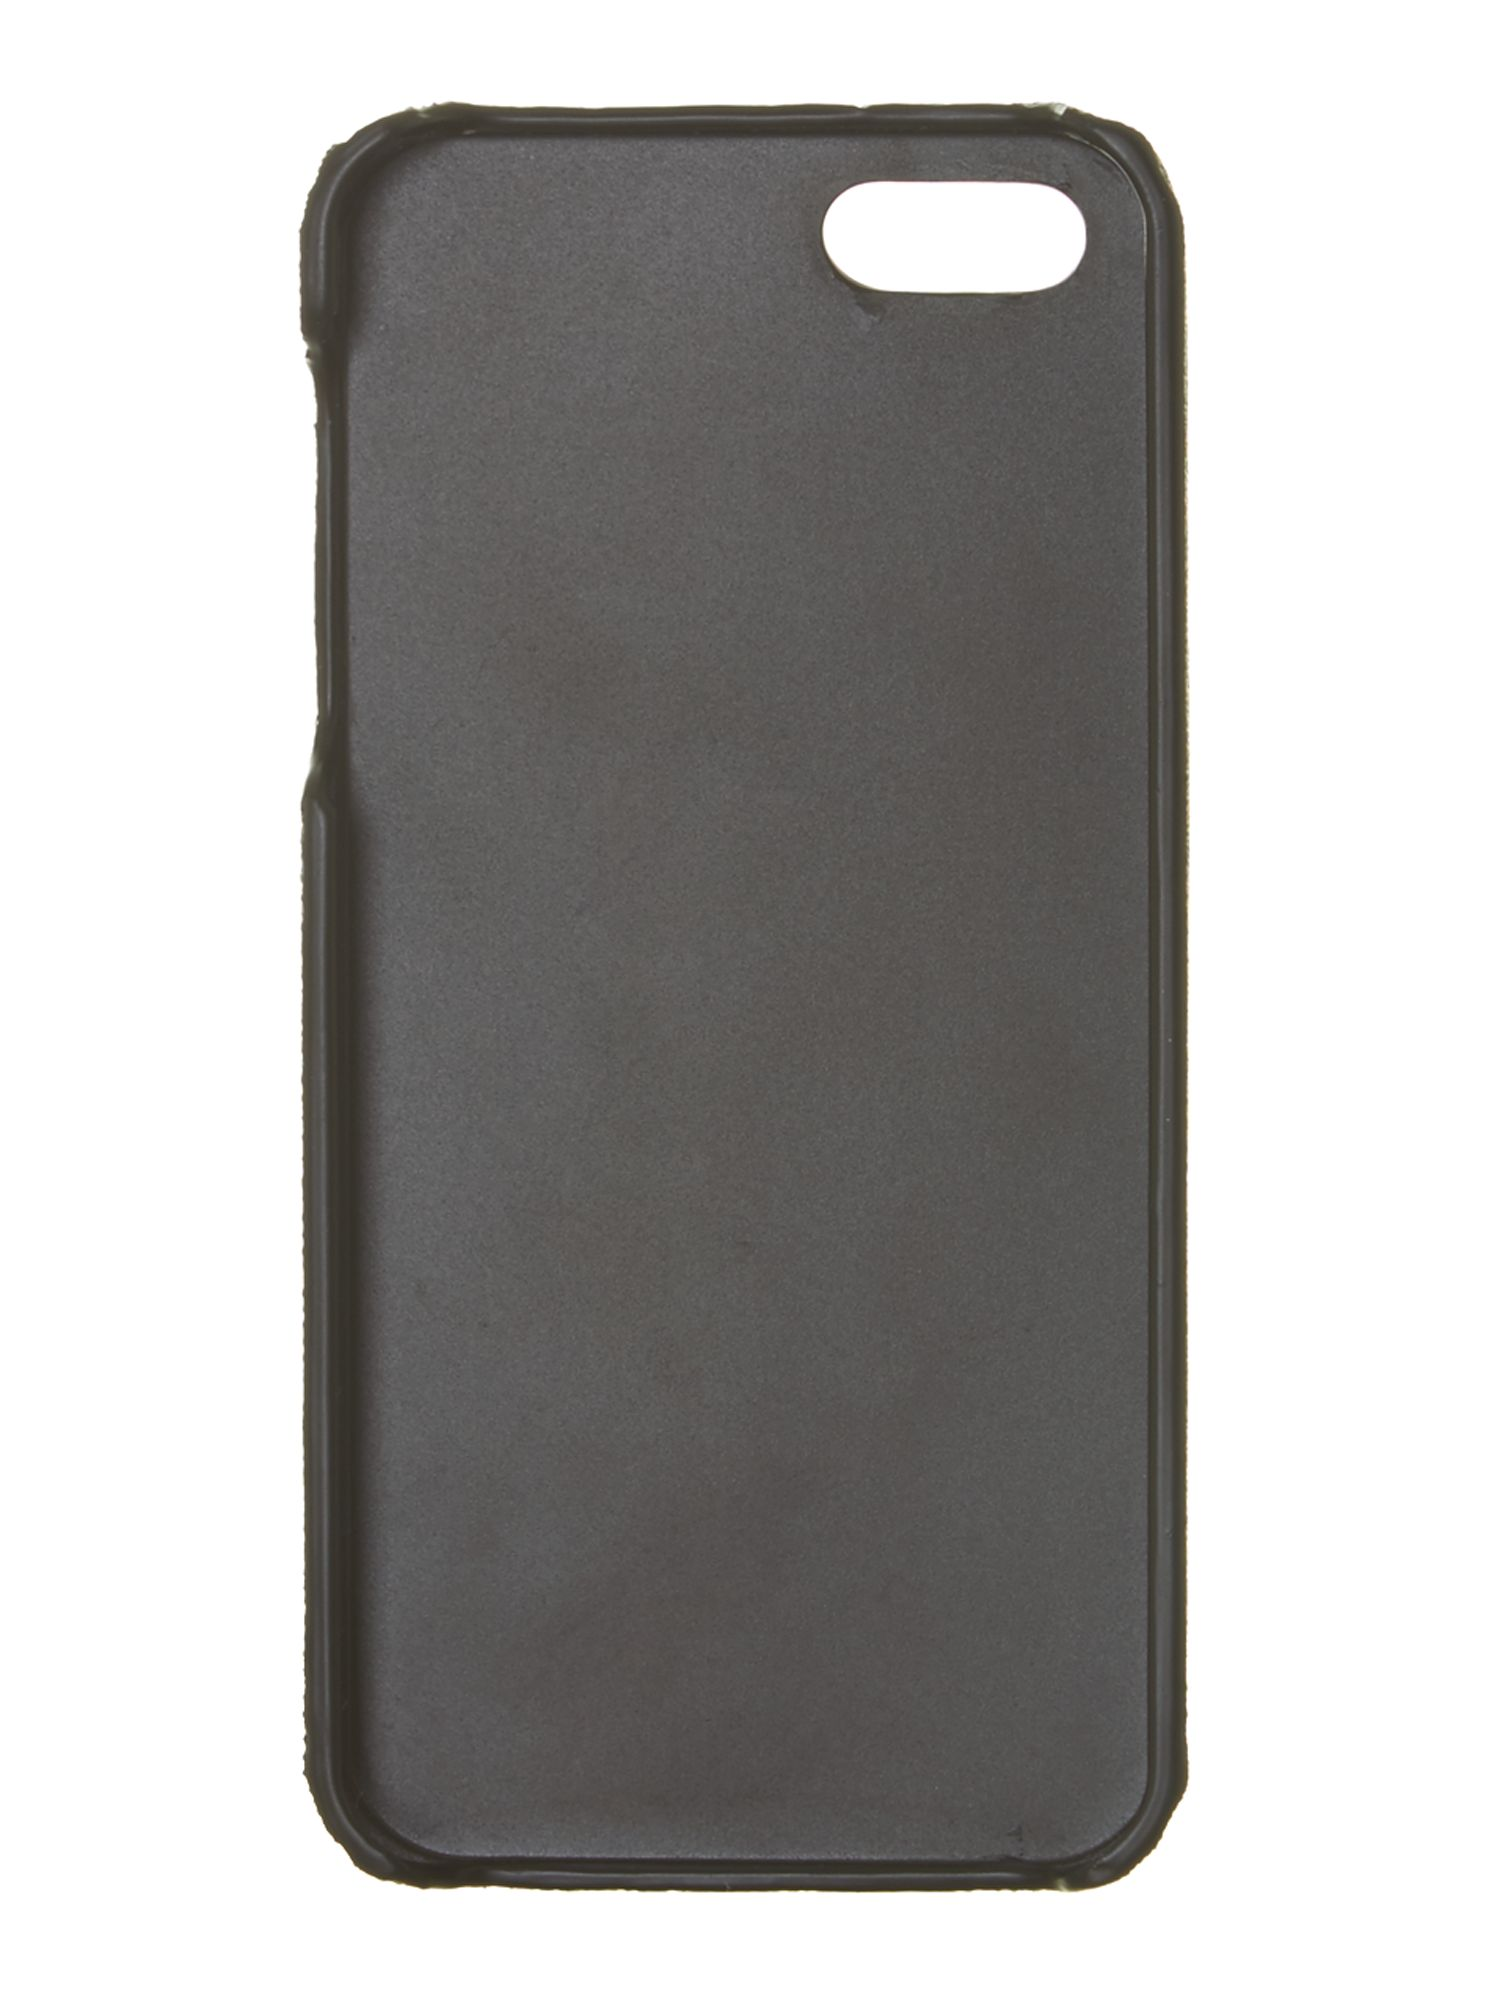 Saffiano black iPhone 5 case